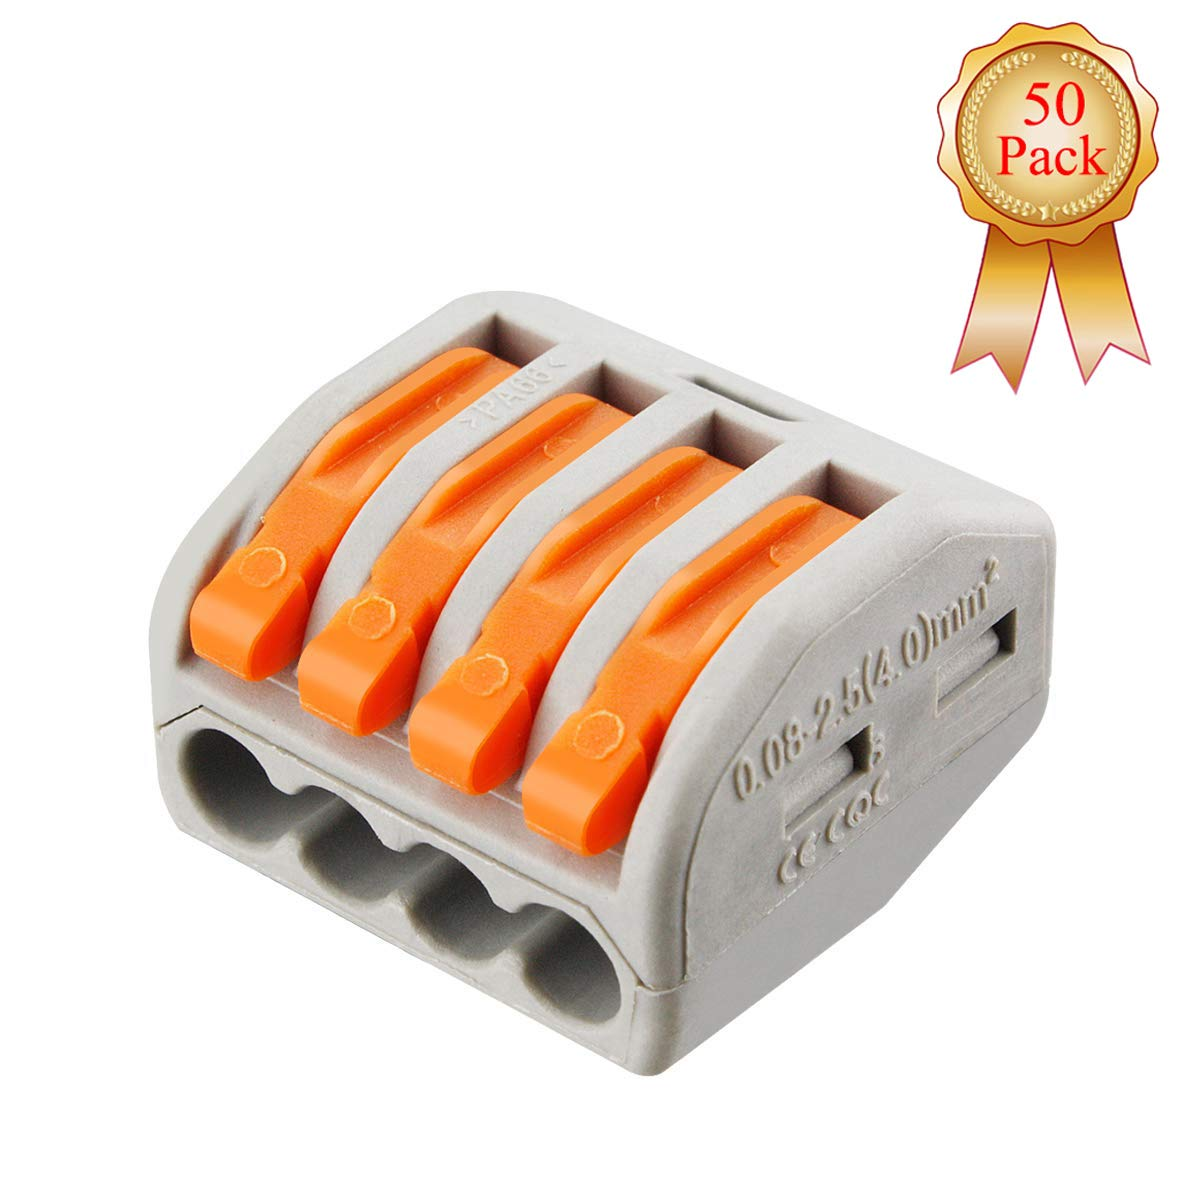 Kalolary Lever-Nut Wire Connector-50Pack 4 Port PCT-214 Assortment Conductor Compact Wire Connectors Terminal Block Wire Push Cable Connector